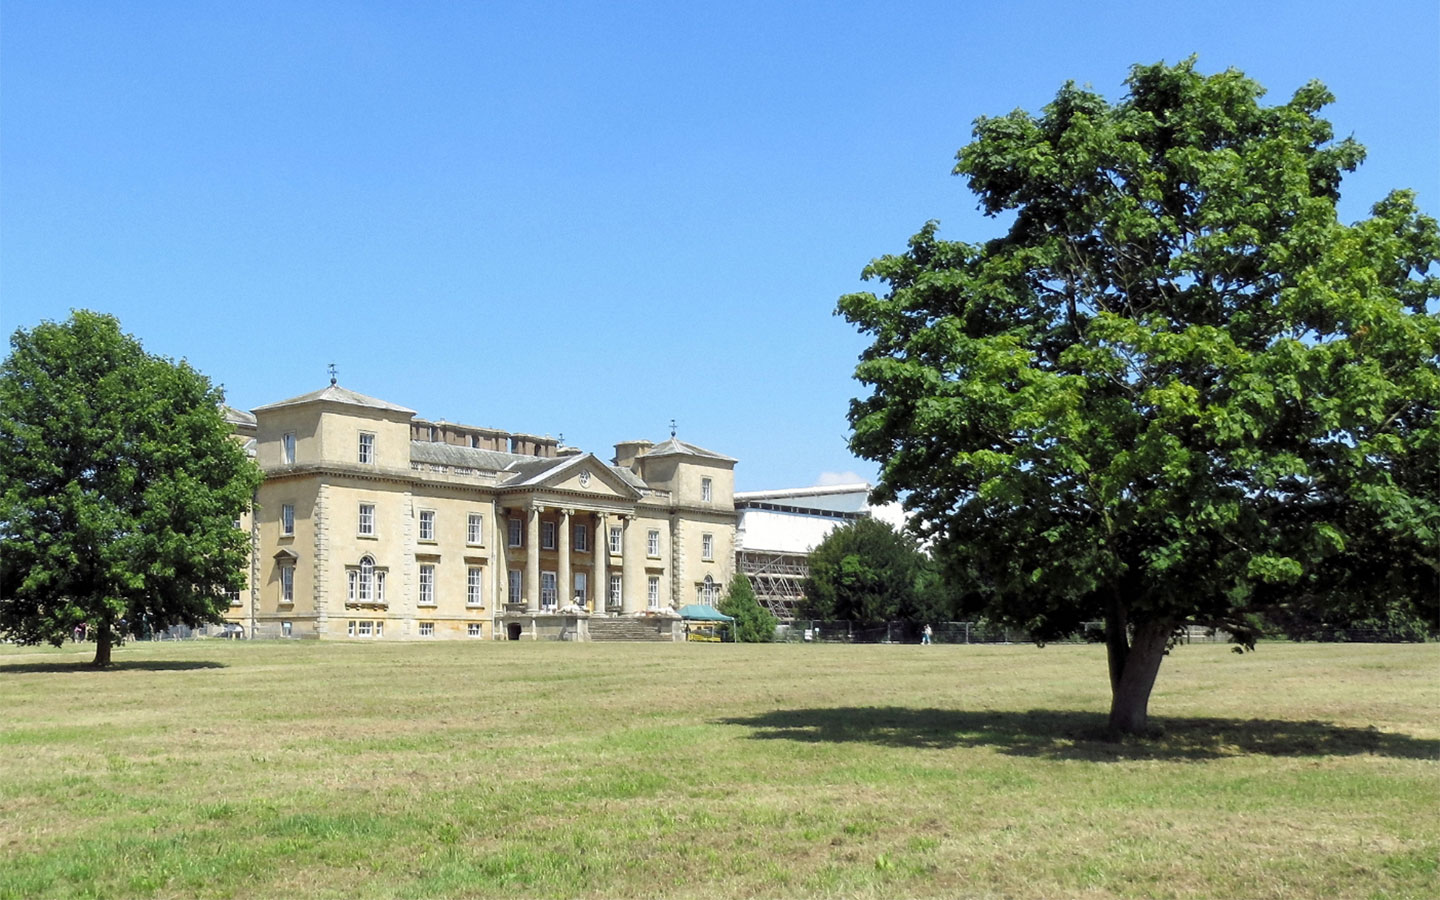 Croome National Trust site in the Cotswolds